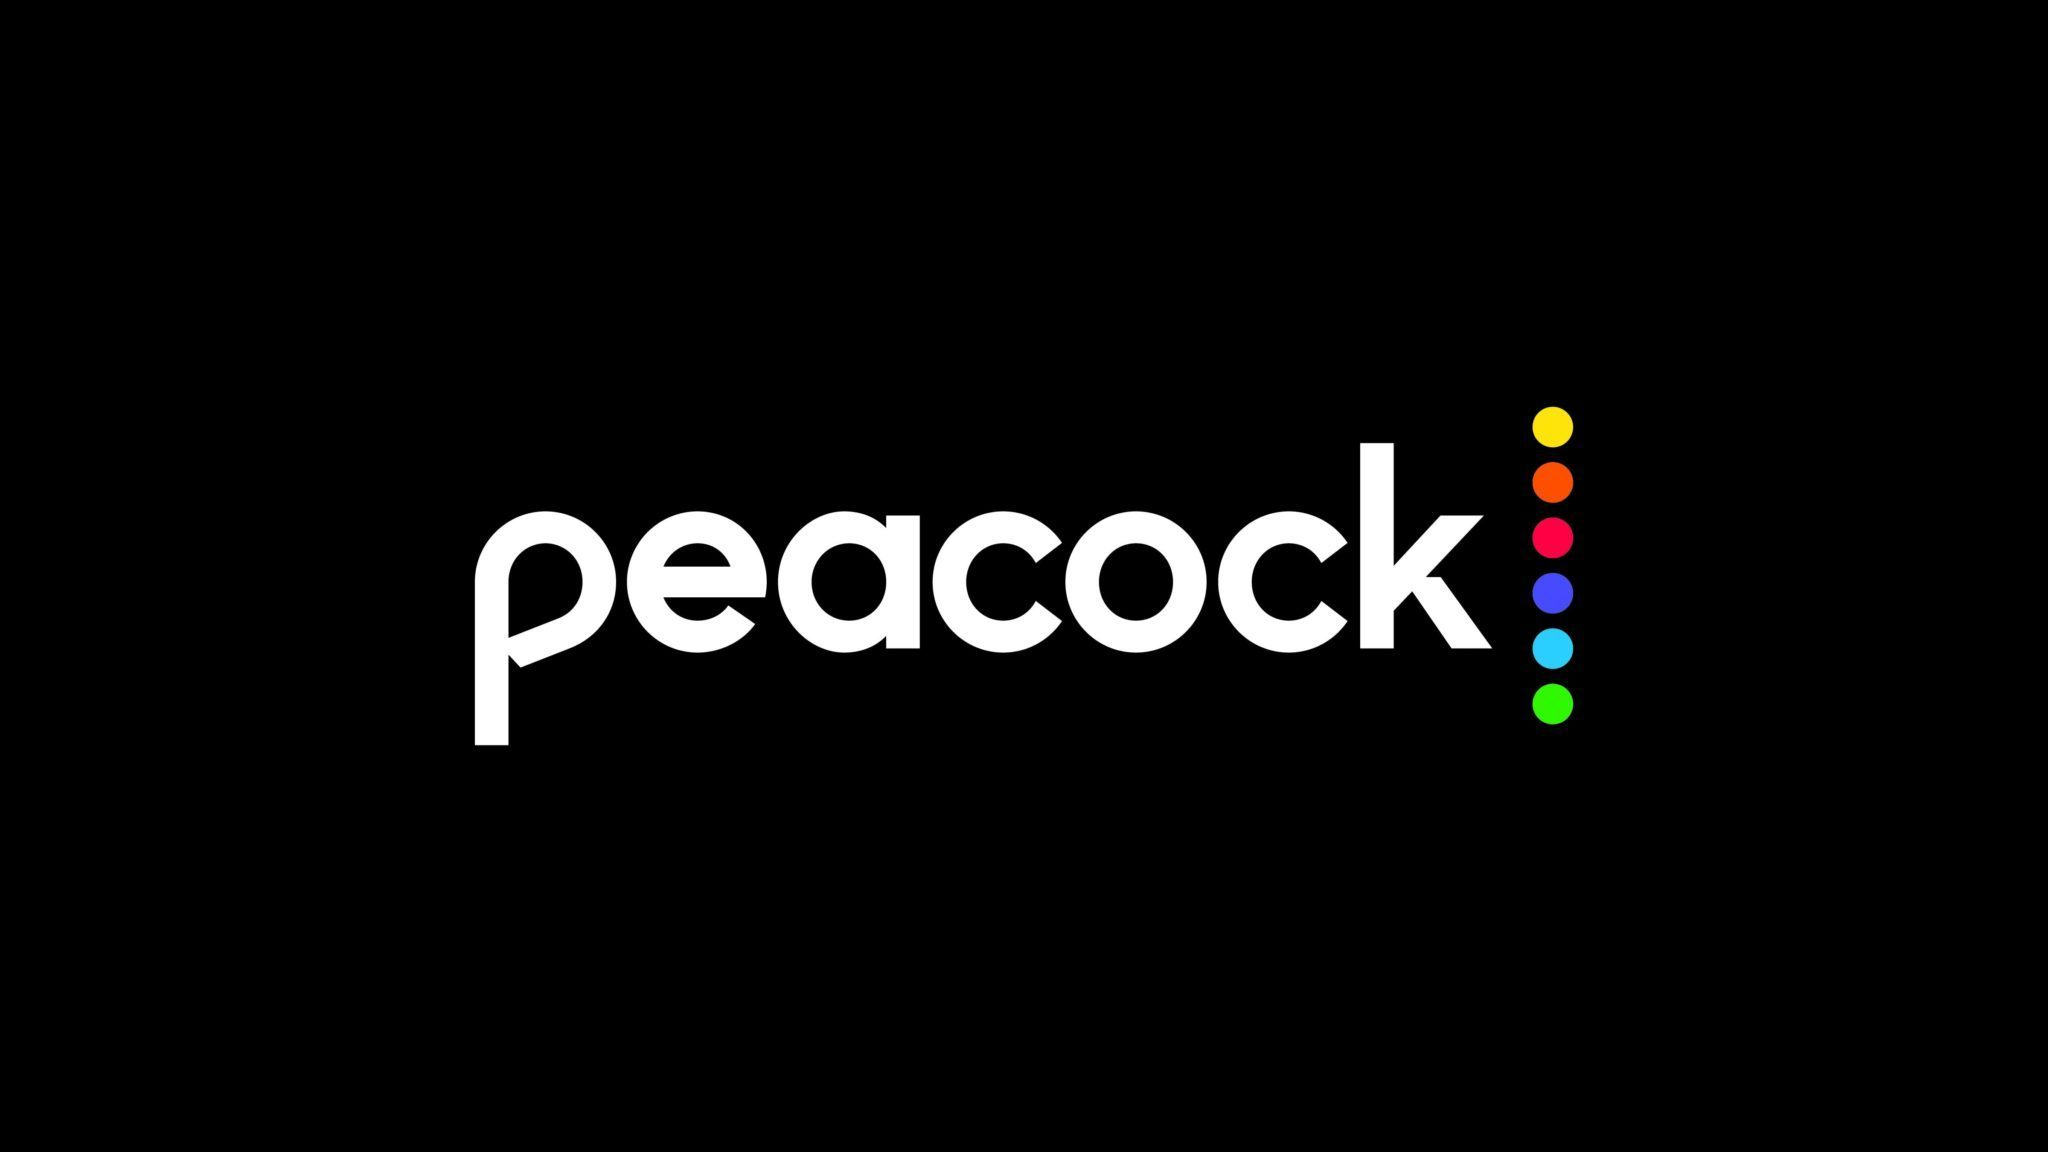 NBC Peacock Service and Content Details